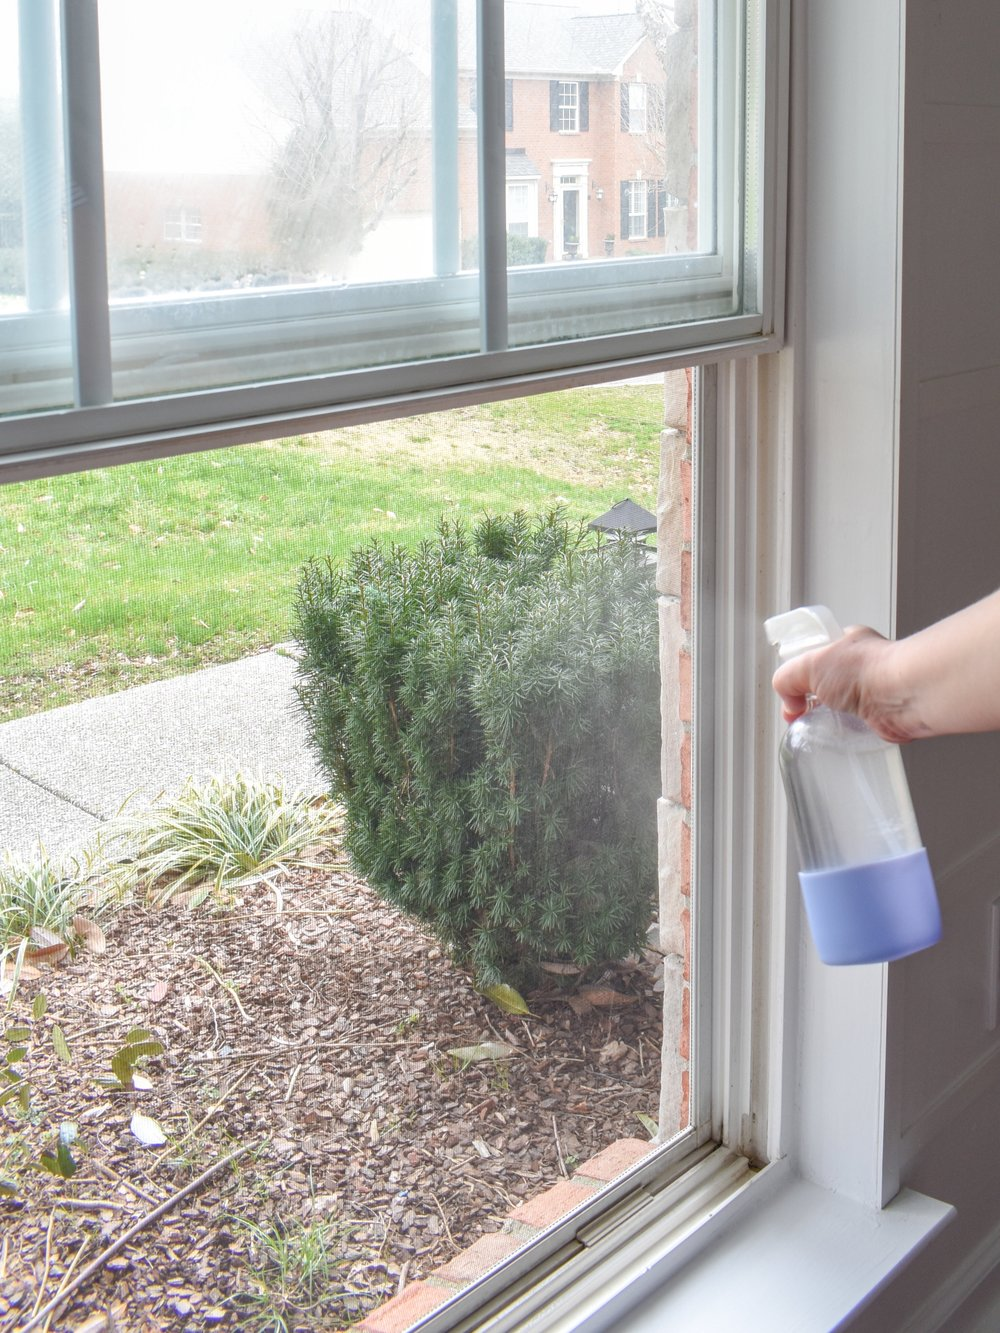 Natural Cleaning: all natural, bug-repelling window + glass cleaner recipe #essentialoils #naturalcleaning #diycleaners